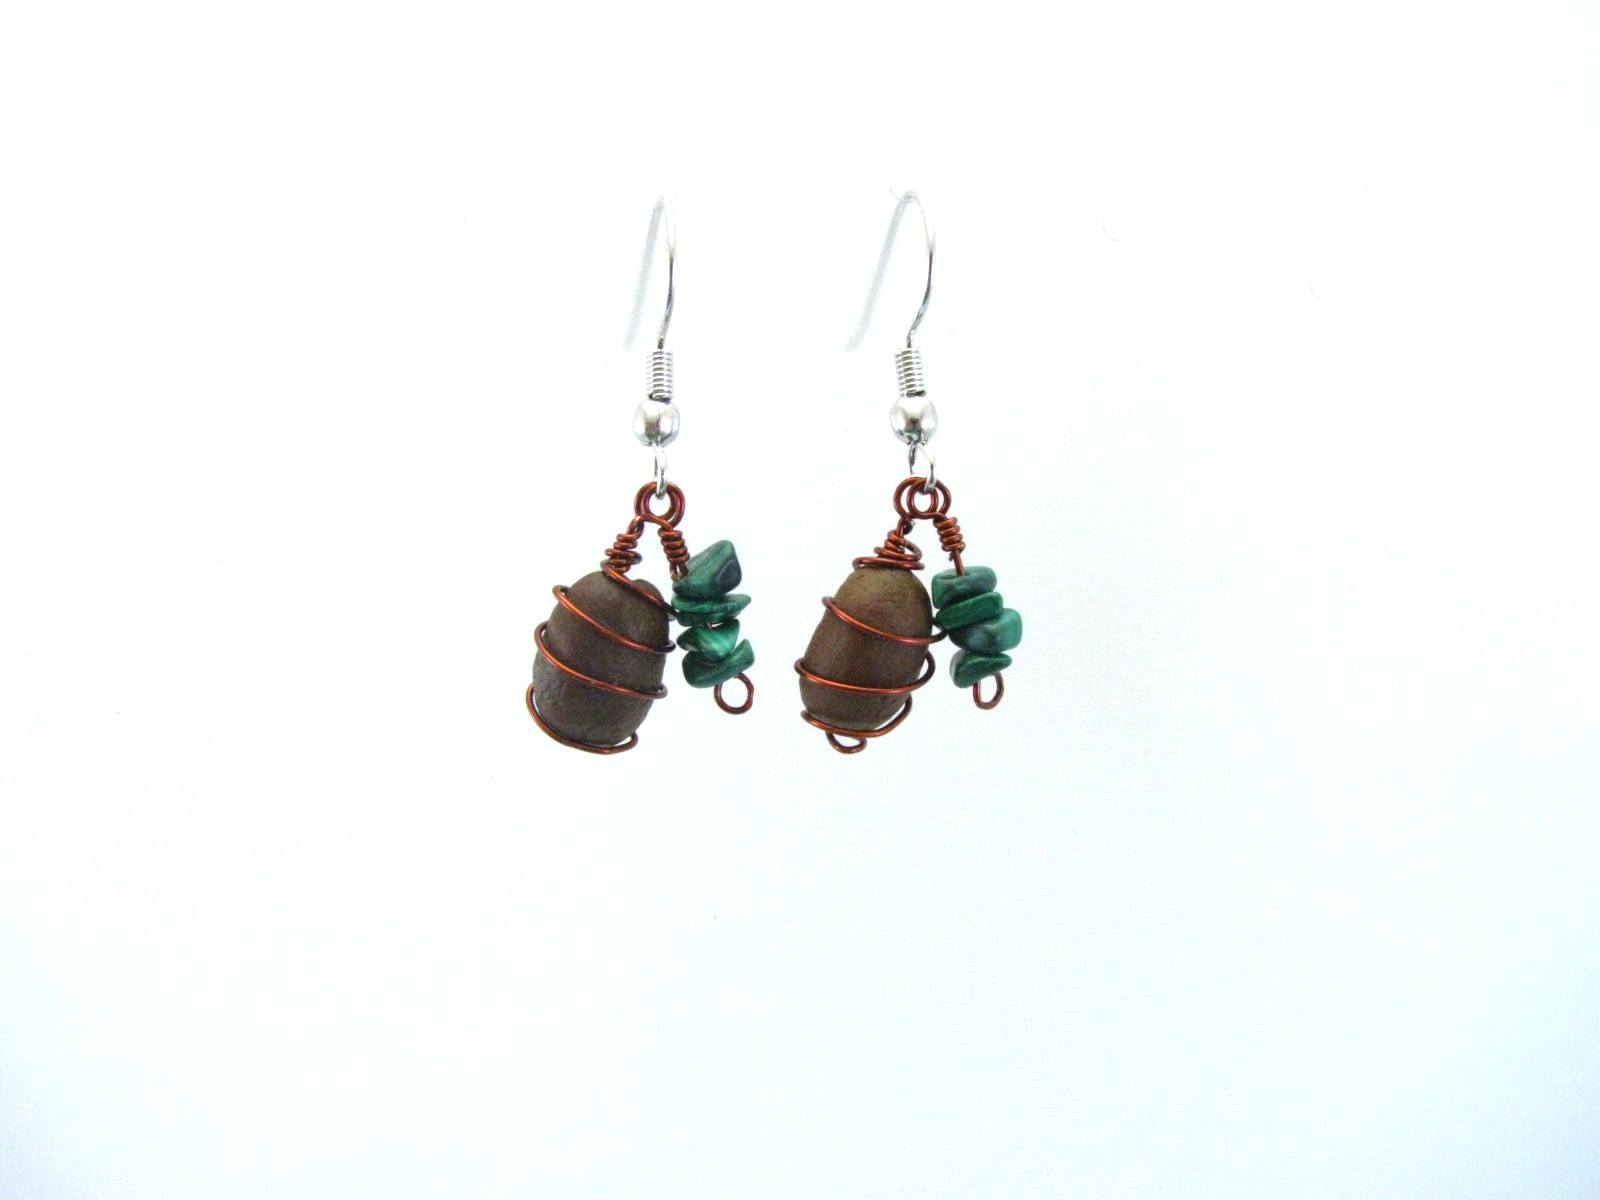 Coffee Bean Hand Wrapped in Copper with Malachite Earrings by Sweetfire Creations